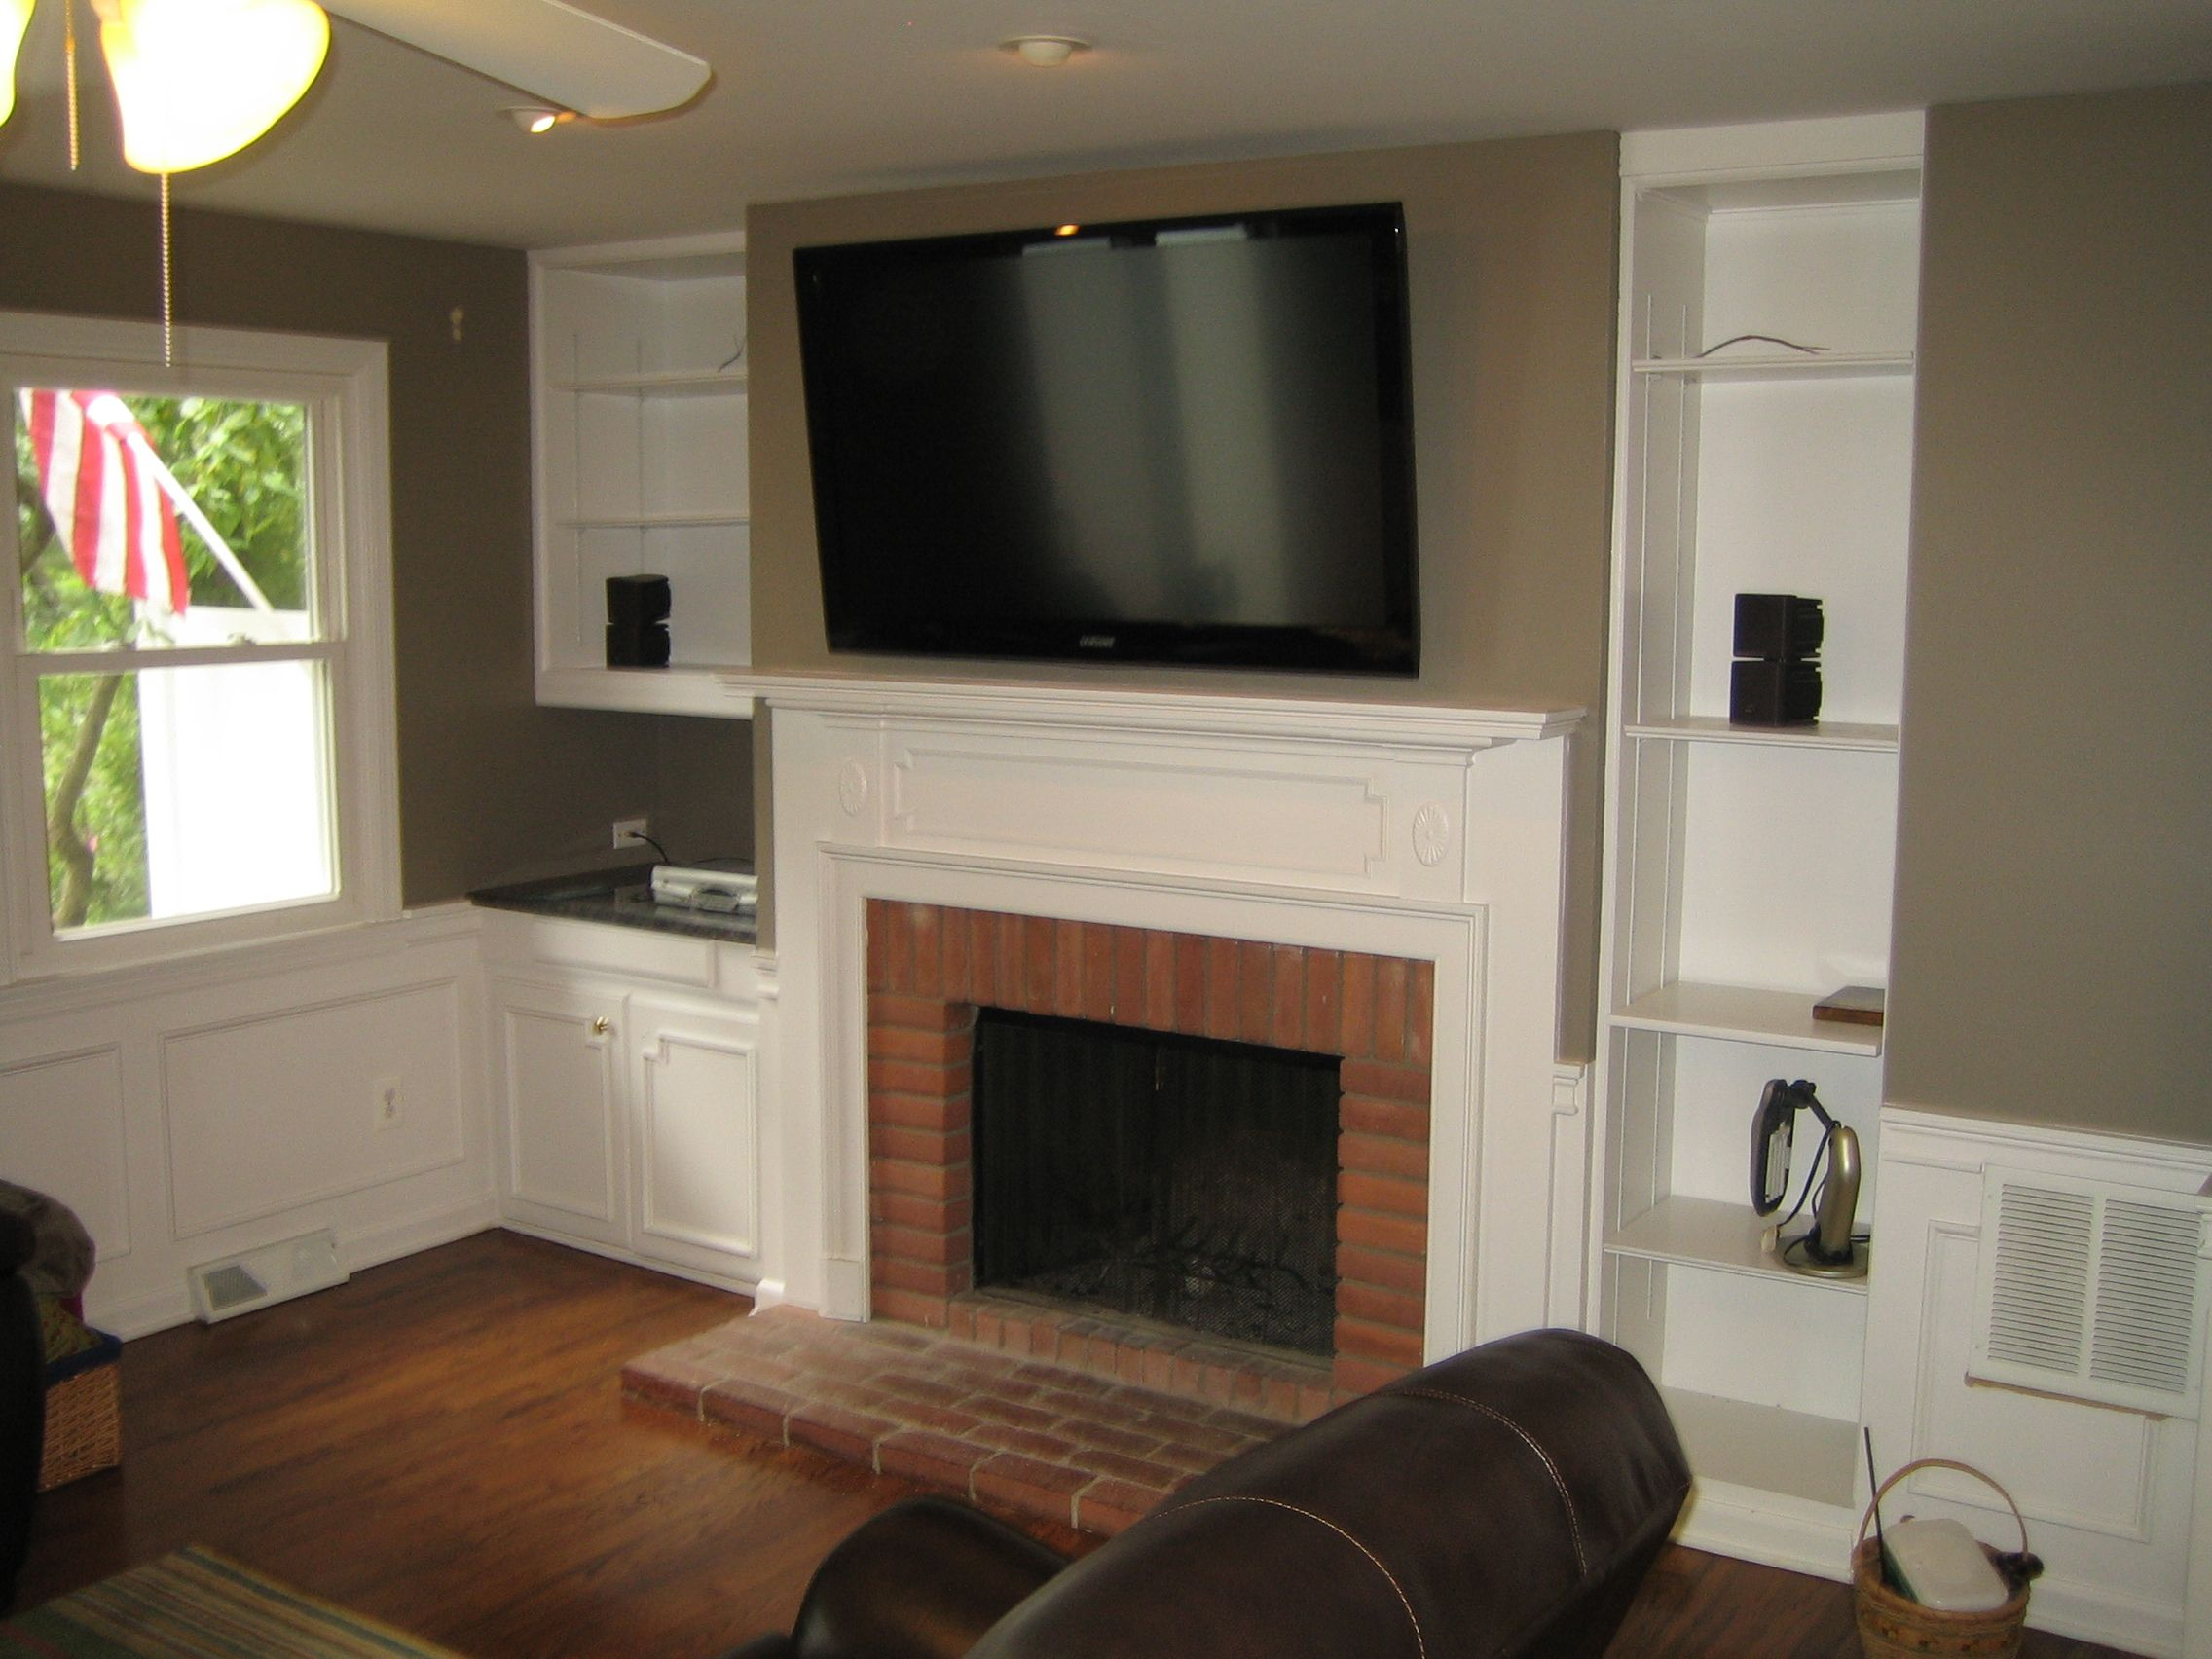 Woodbridge Ct Mount Tv Above Fireplace Richey Group Llc Audio | TV above Fireplace | Pinterest | Mounted tv